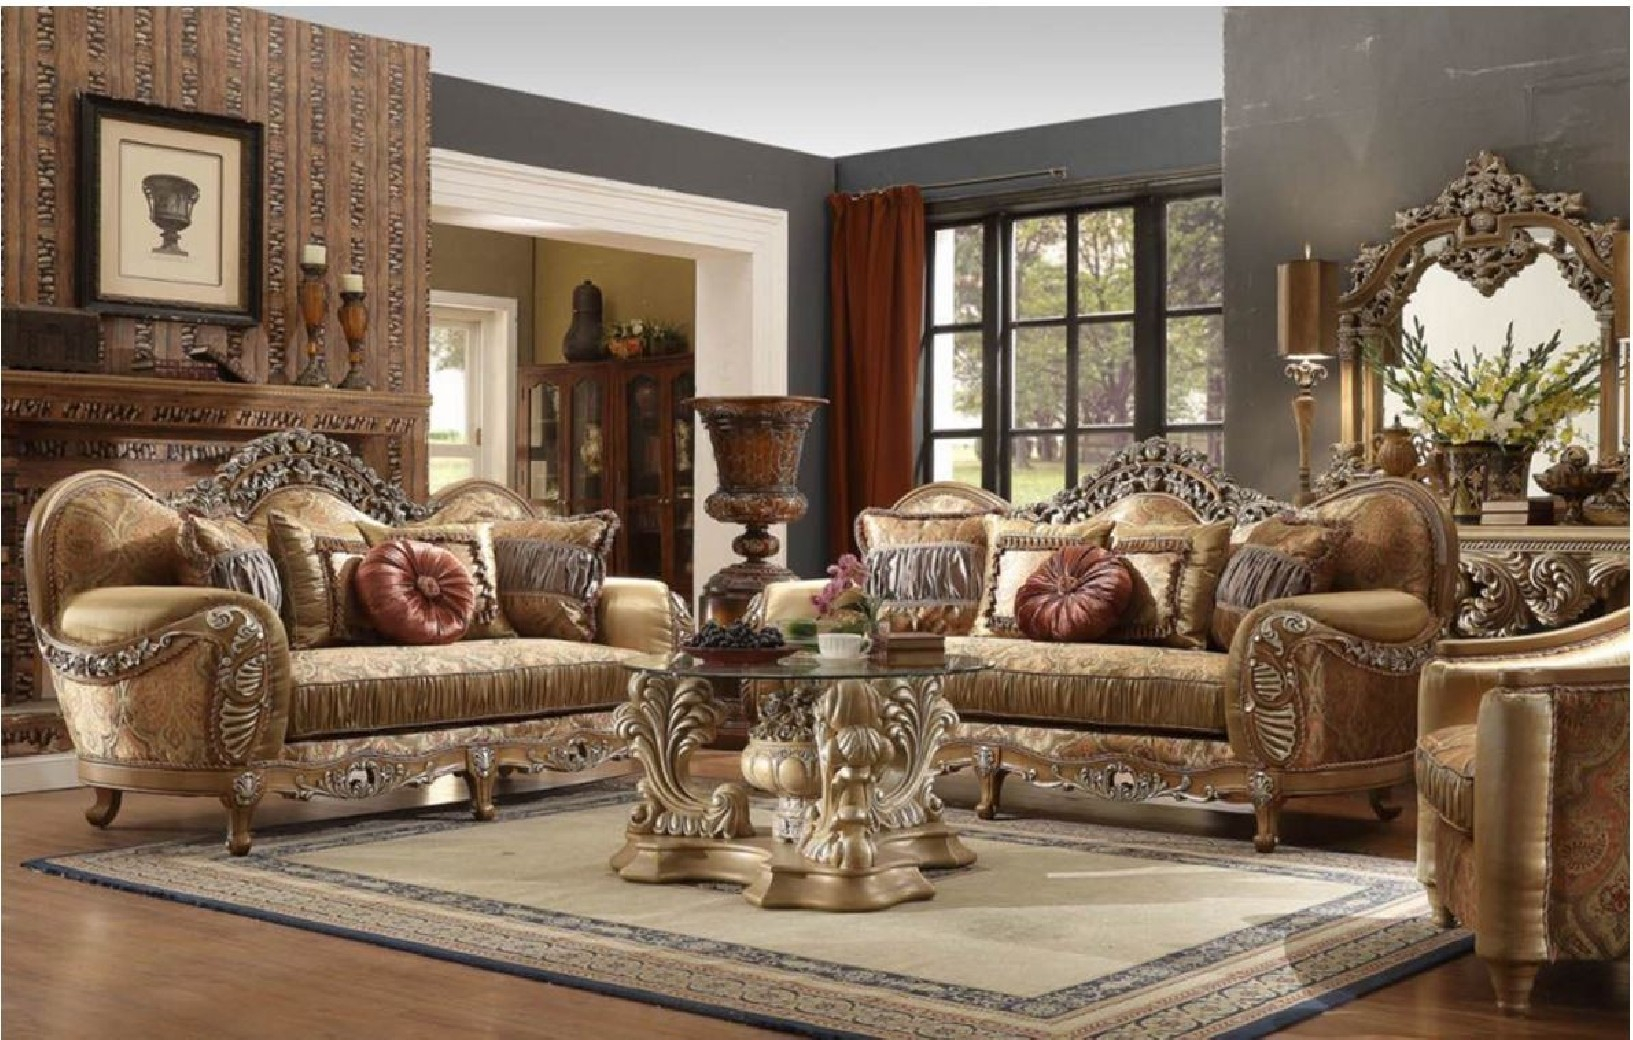 27 Famsa Living Room Sets Famsa Furniture Image May Contain 1 pertaining to 13 Genius Ways How to Improve Famsa Living Room Sets